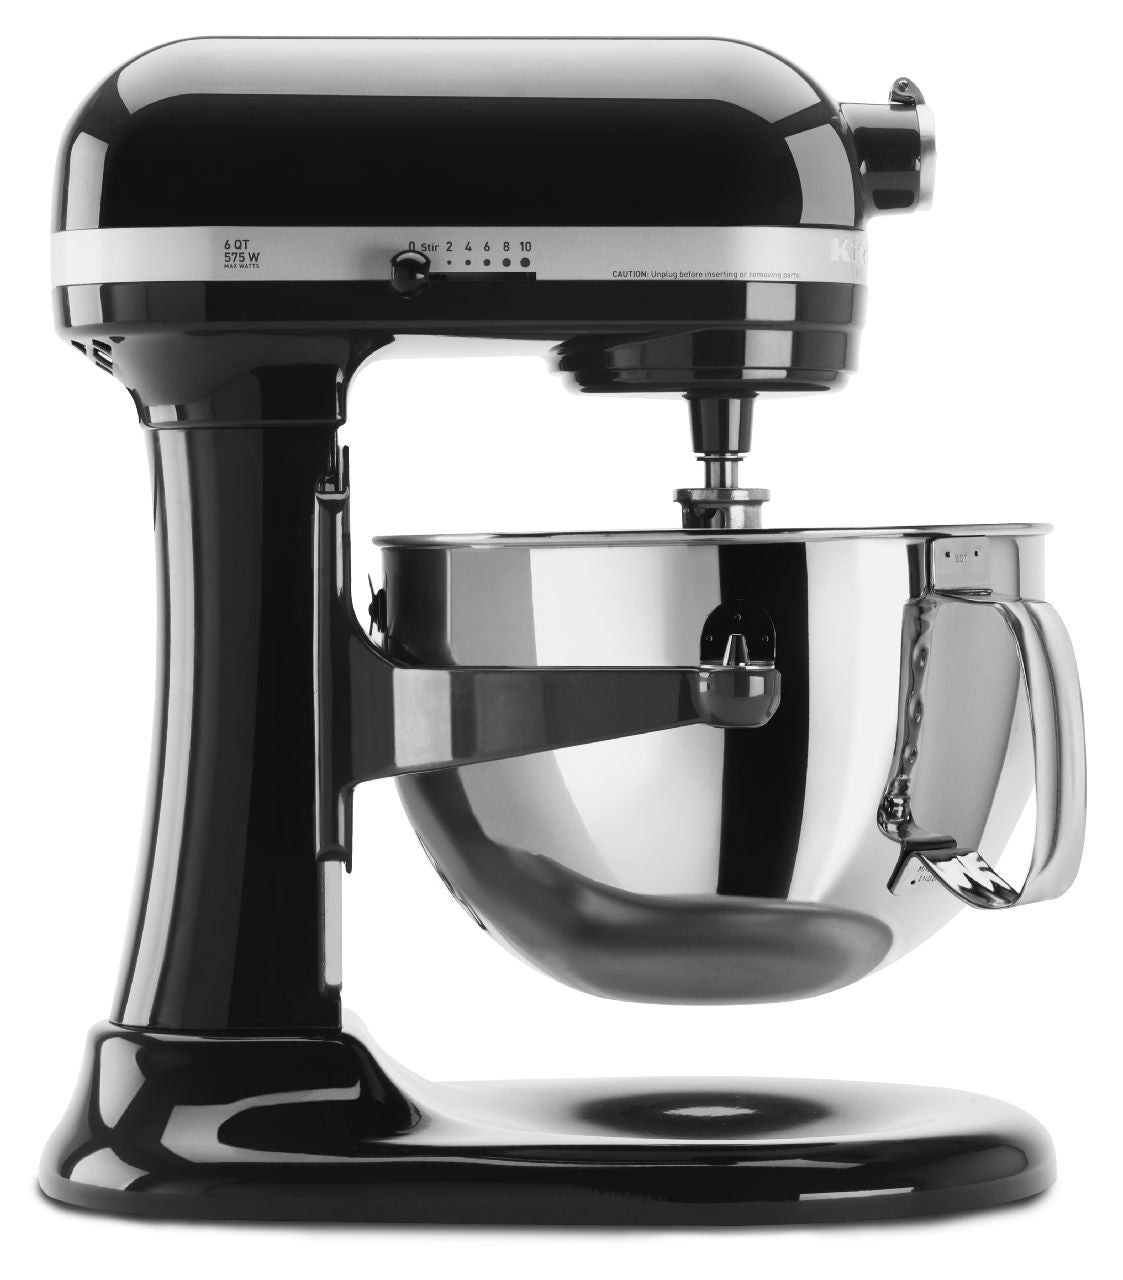 Kitchenaid 6 Qt. Professional 600 Series with Pouring Shield - Onyx Black KP26M1XOB